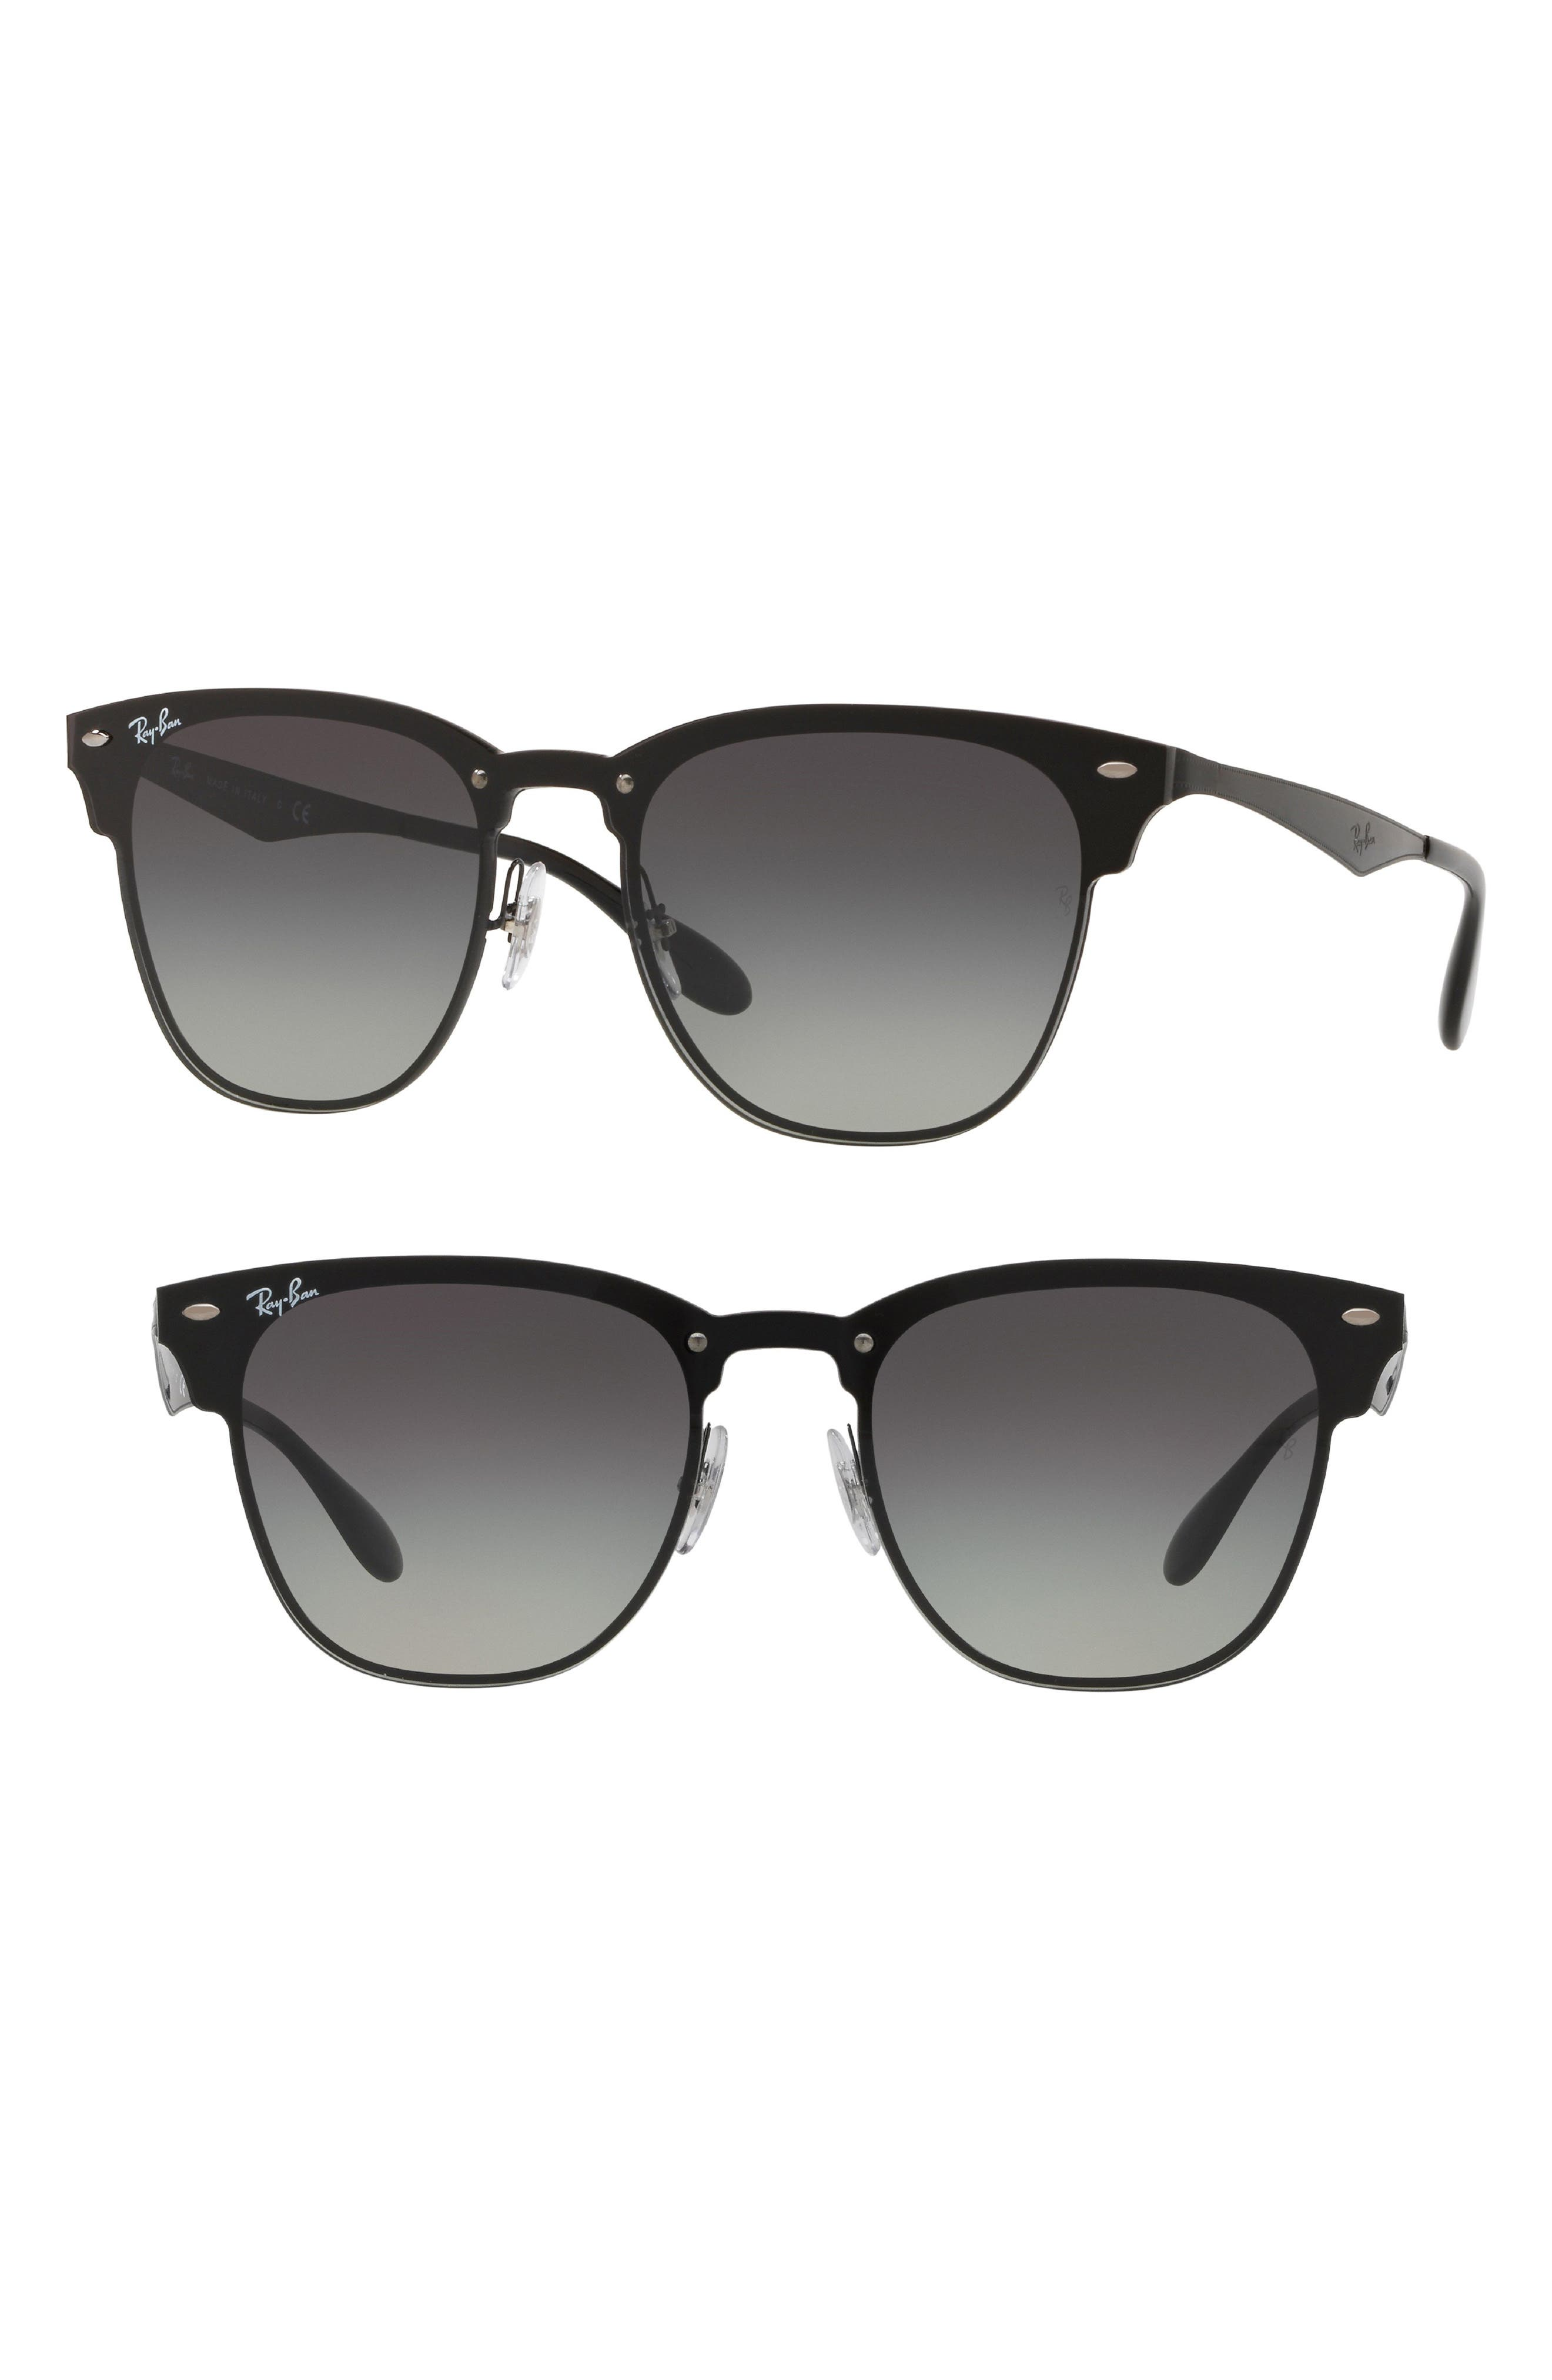 Blaze Clubmaster 50mm Sunglasses,                             Main thumbnail 1, color,